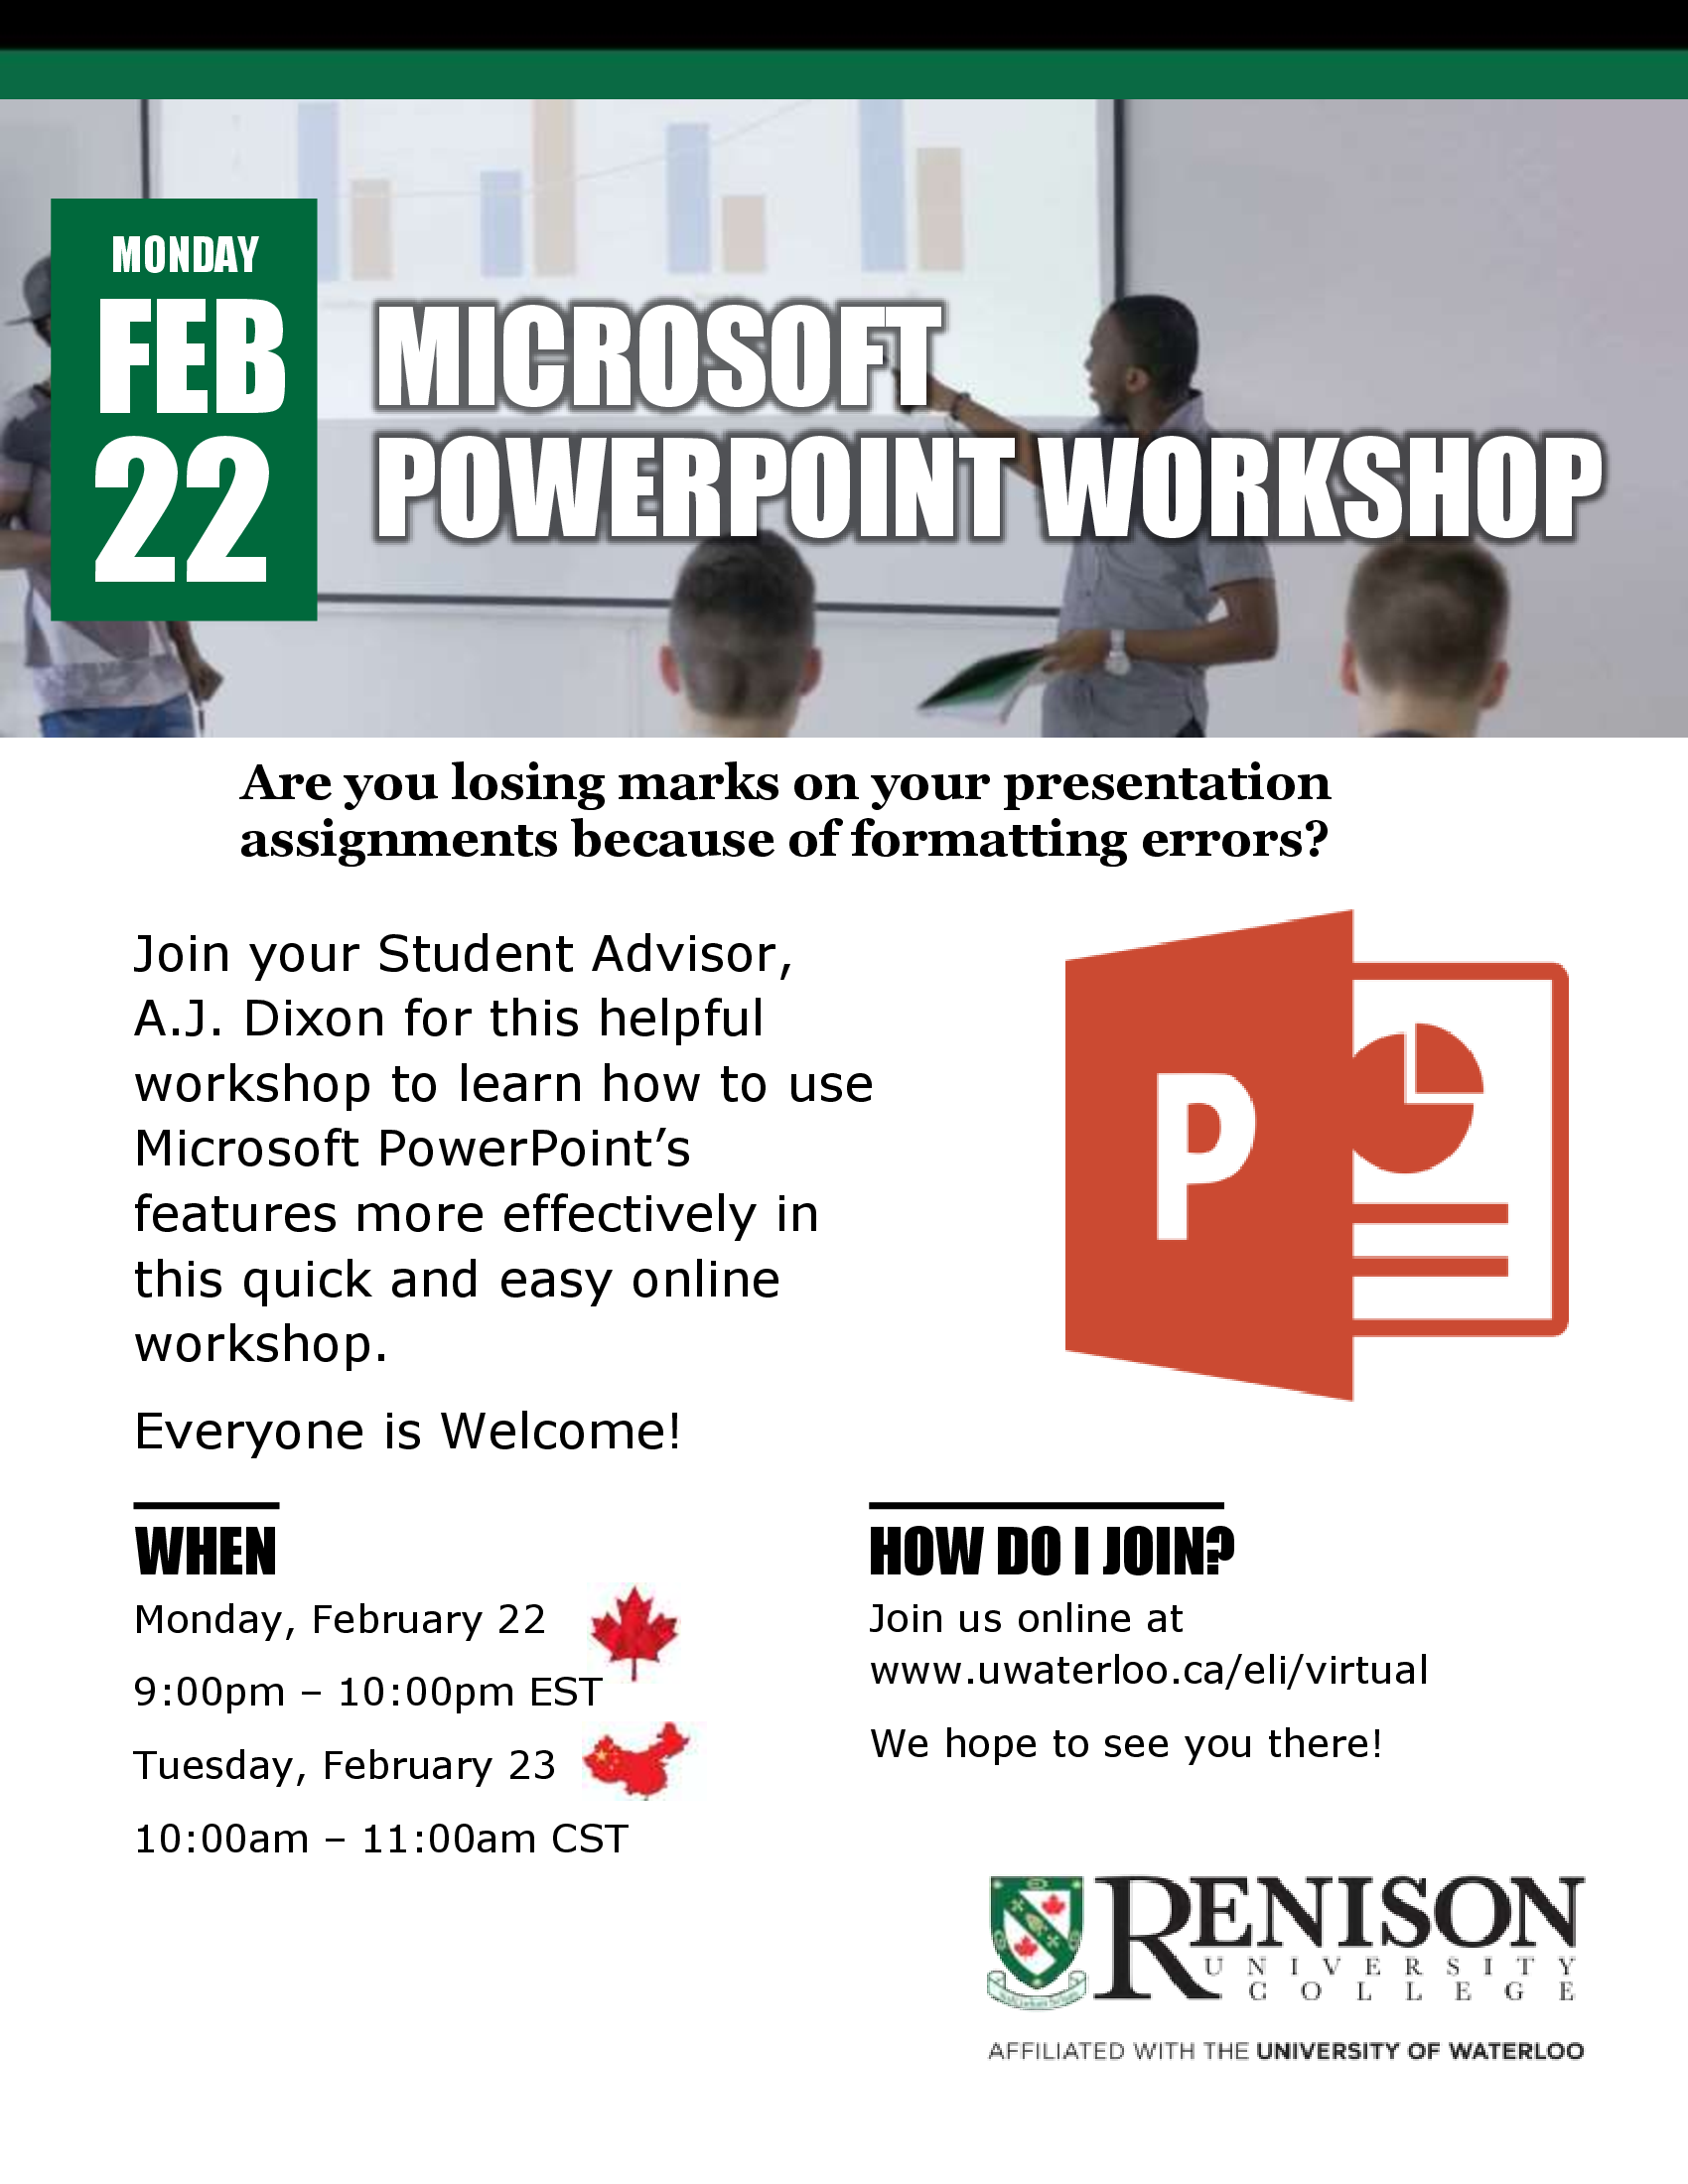 This is a flyer for the PowerPoint Workshop hosted by Renison